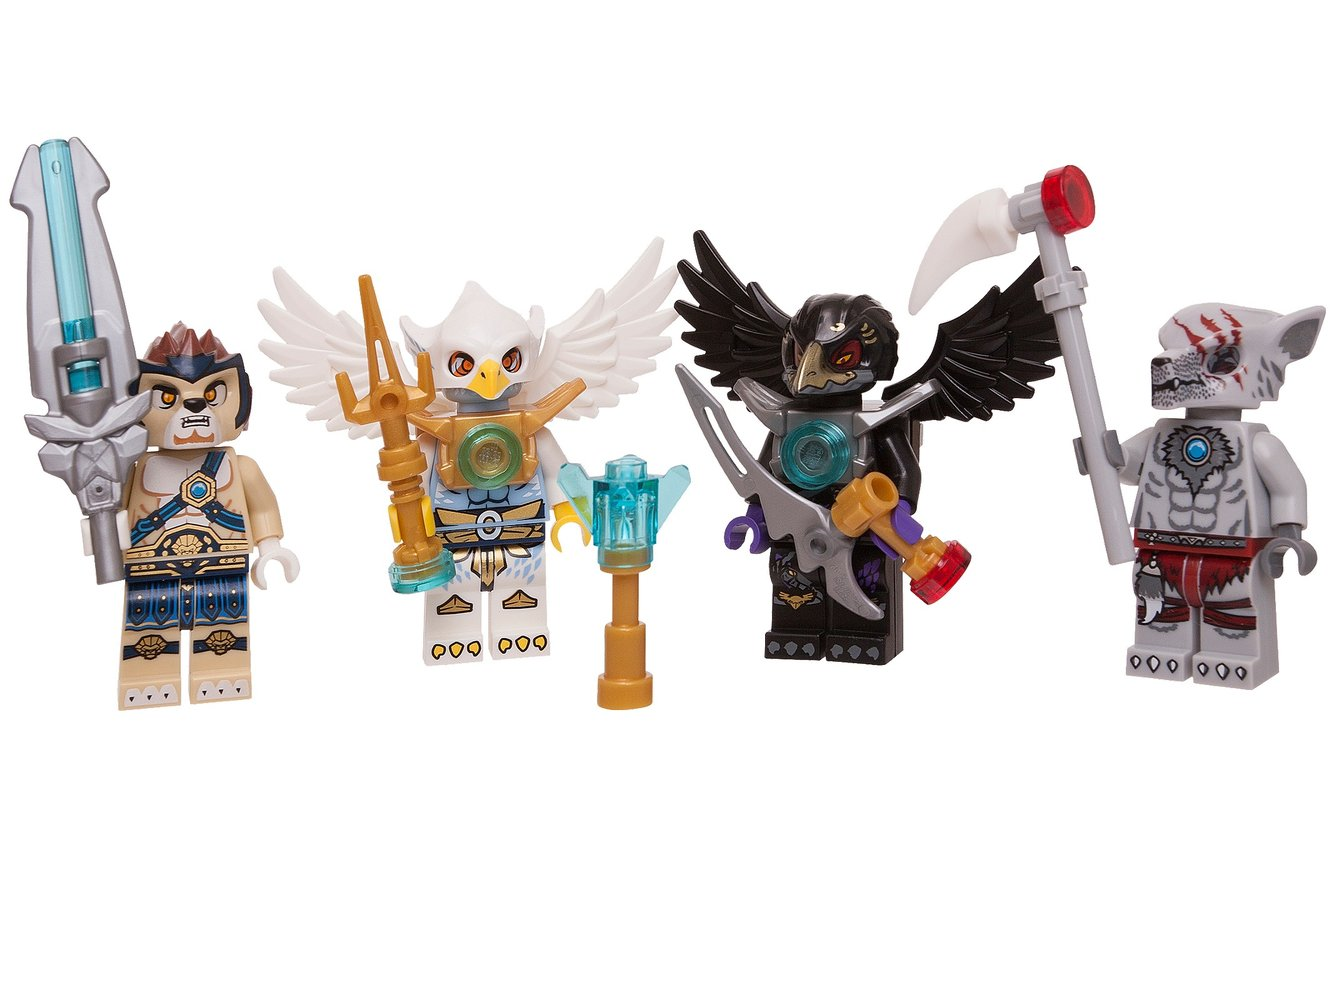 Minifigure Accessory Set